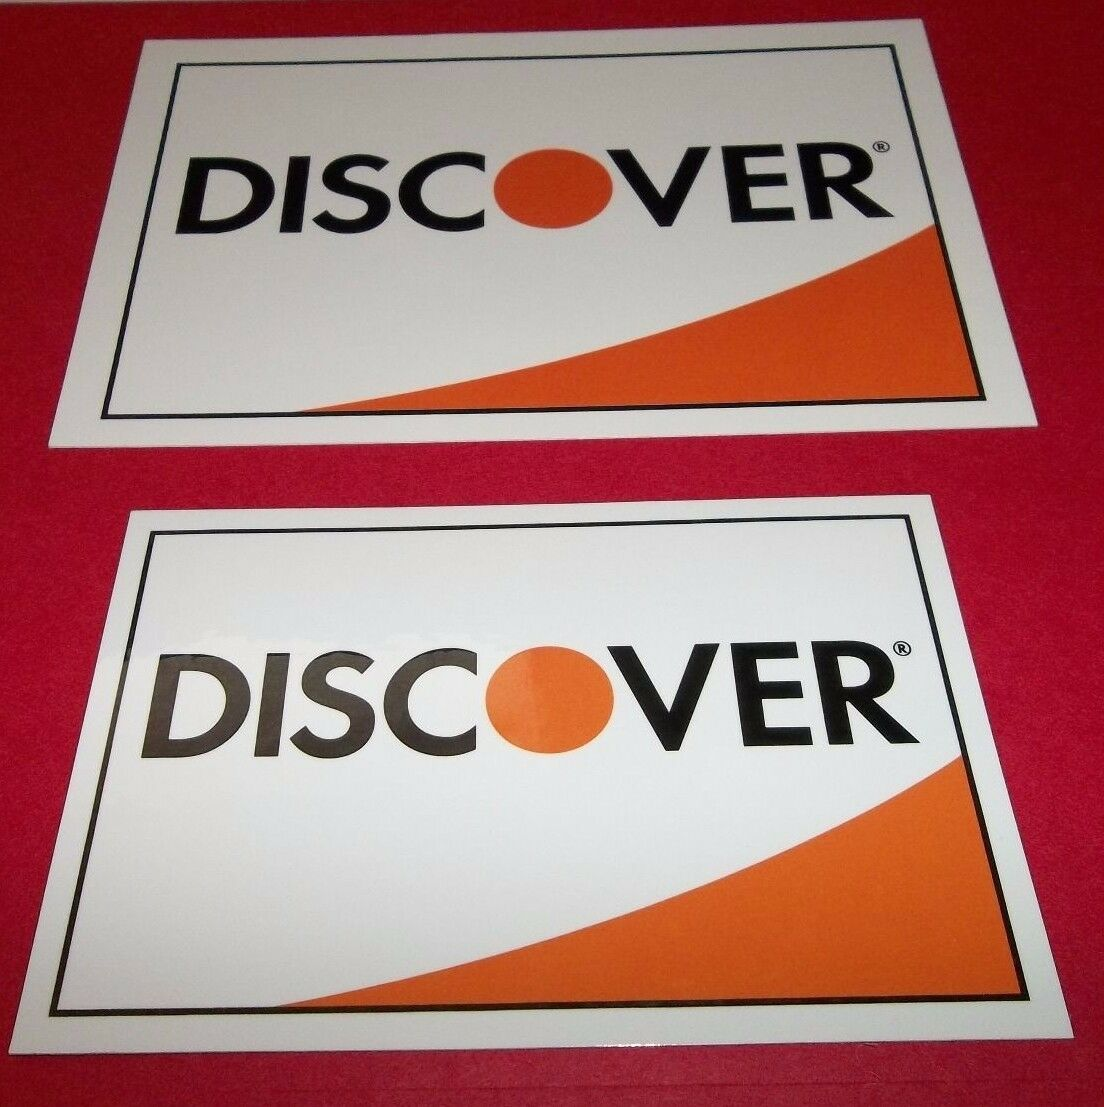 discover credit card stickers decals 1 large 1 medium 2 sided free